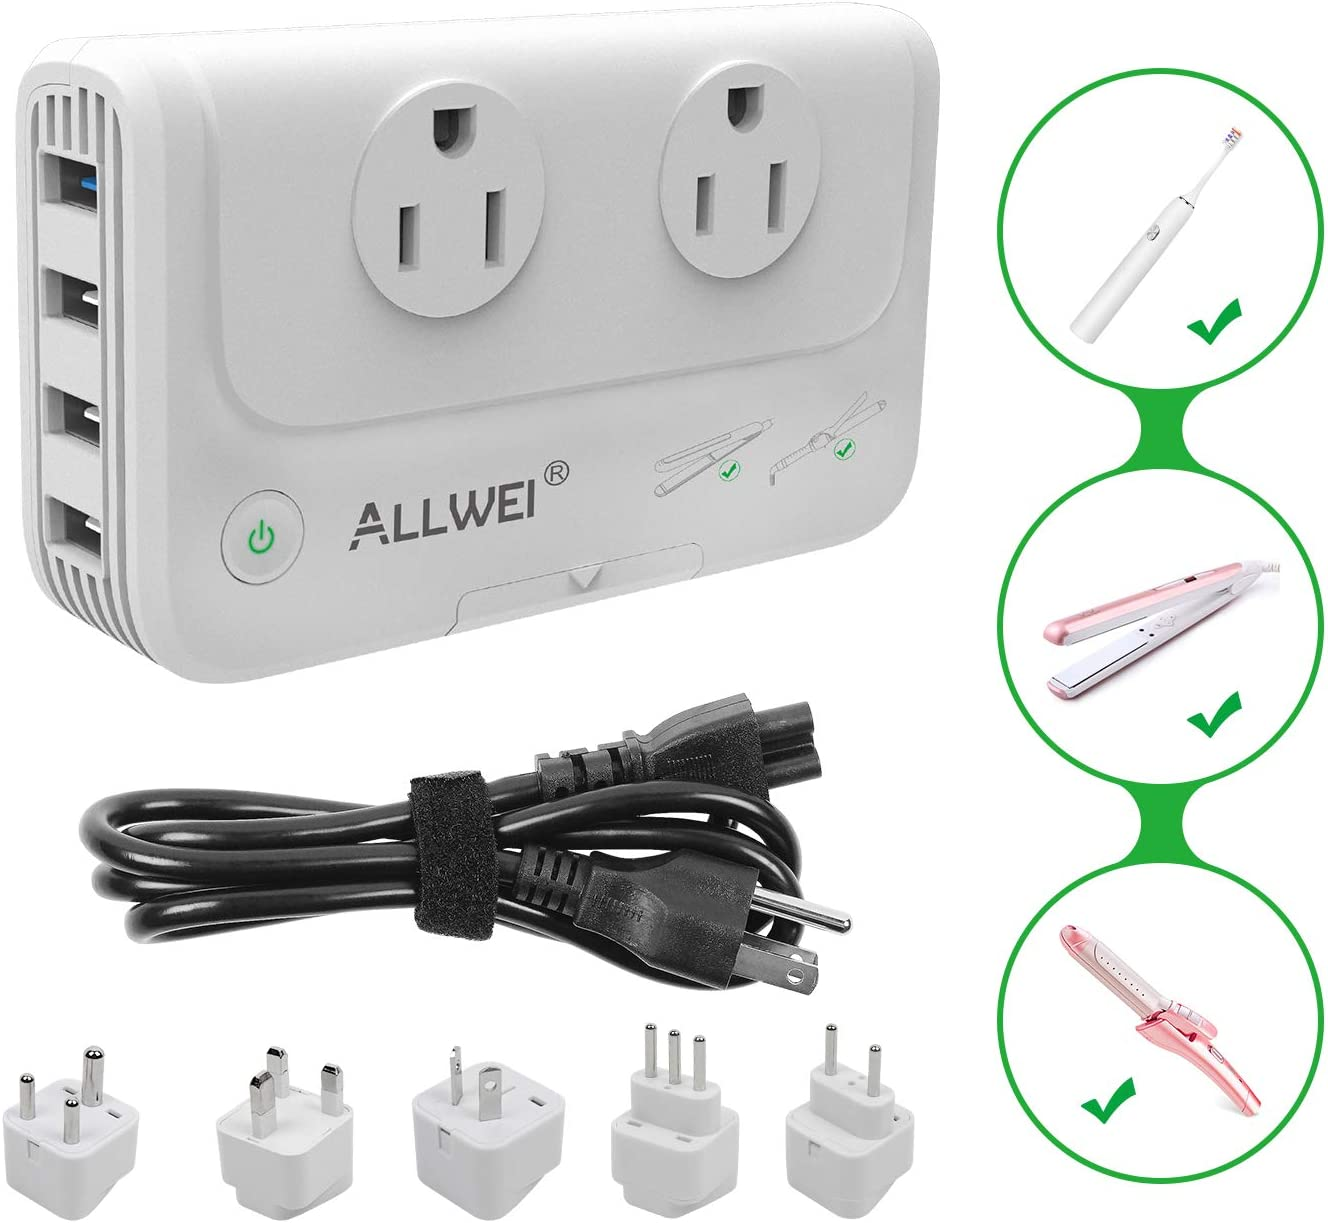 International Travel Adapter 220V to 110V Step Down Power Voltage Converter for Hair Straightener/Curling Iron, Universal Power Plug Adapter UK, US, AU, EU, IT, India …